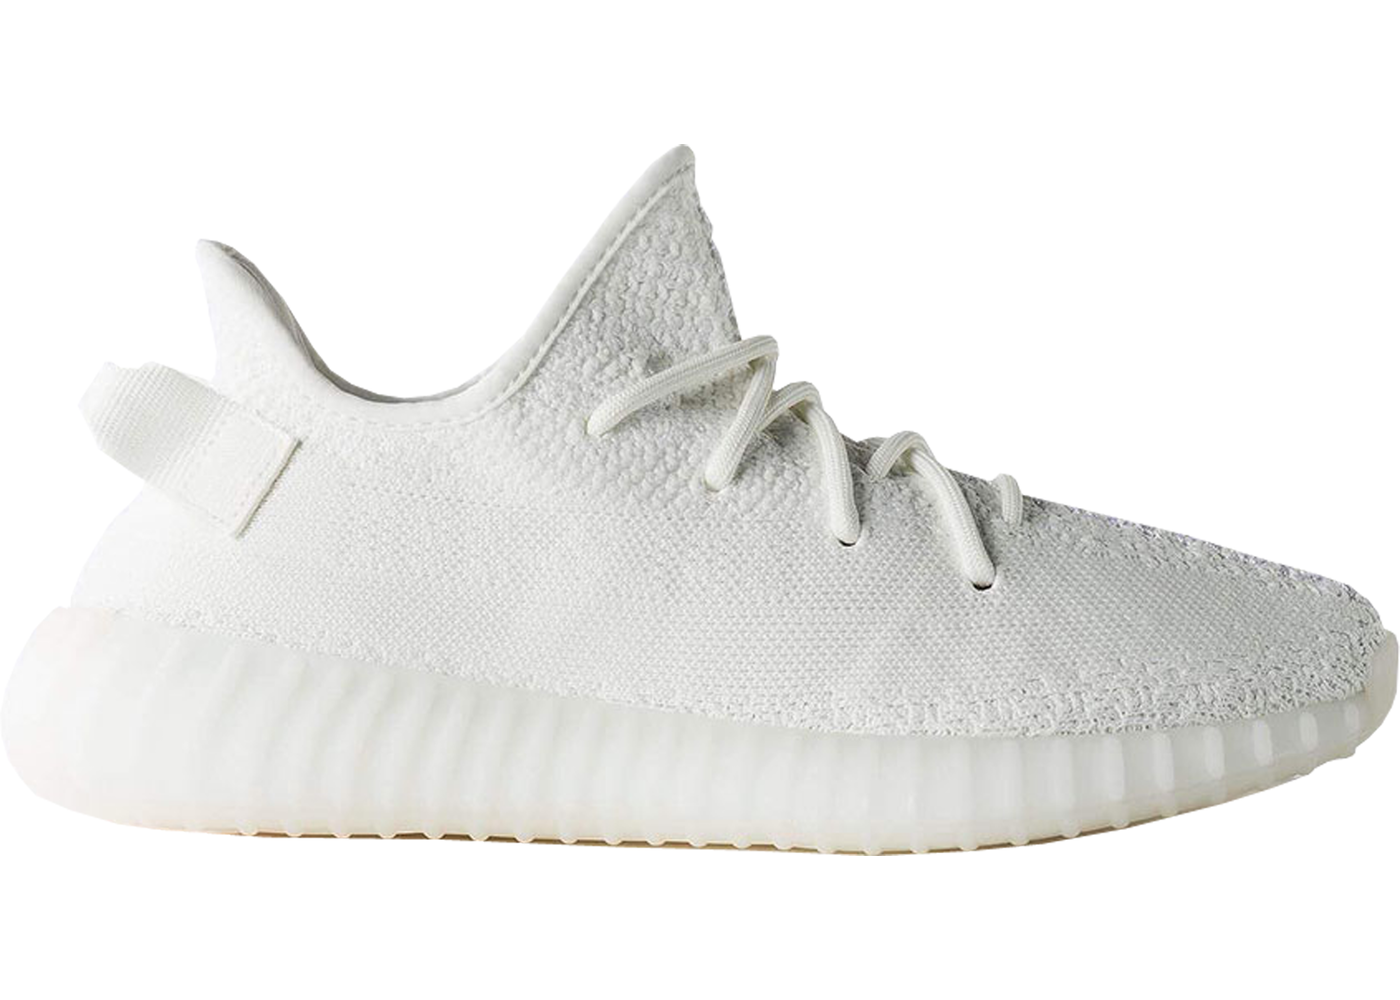 Buy New Adidas Yeezy 350 Womens Luca Beel